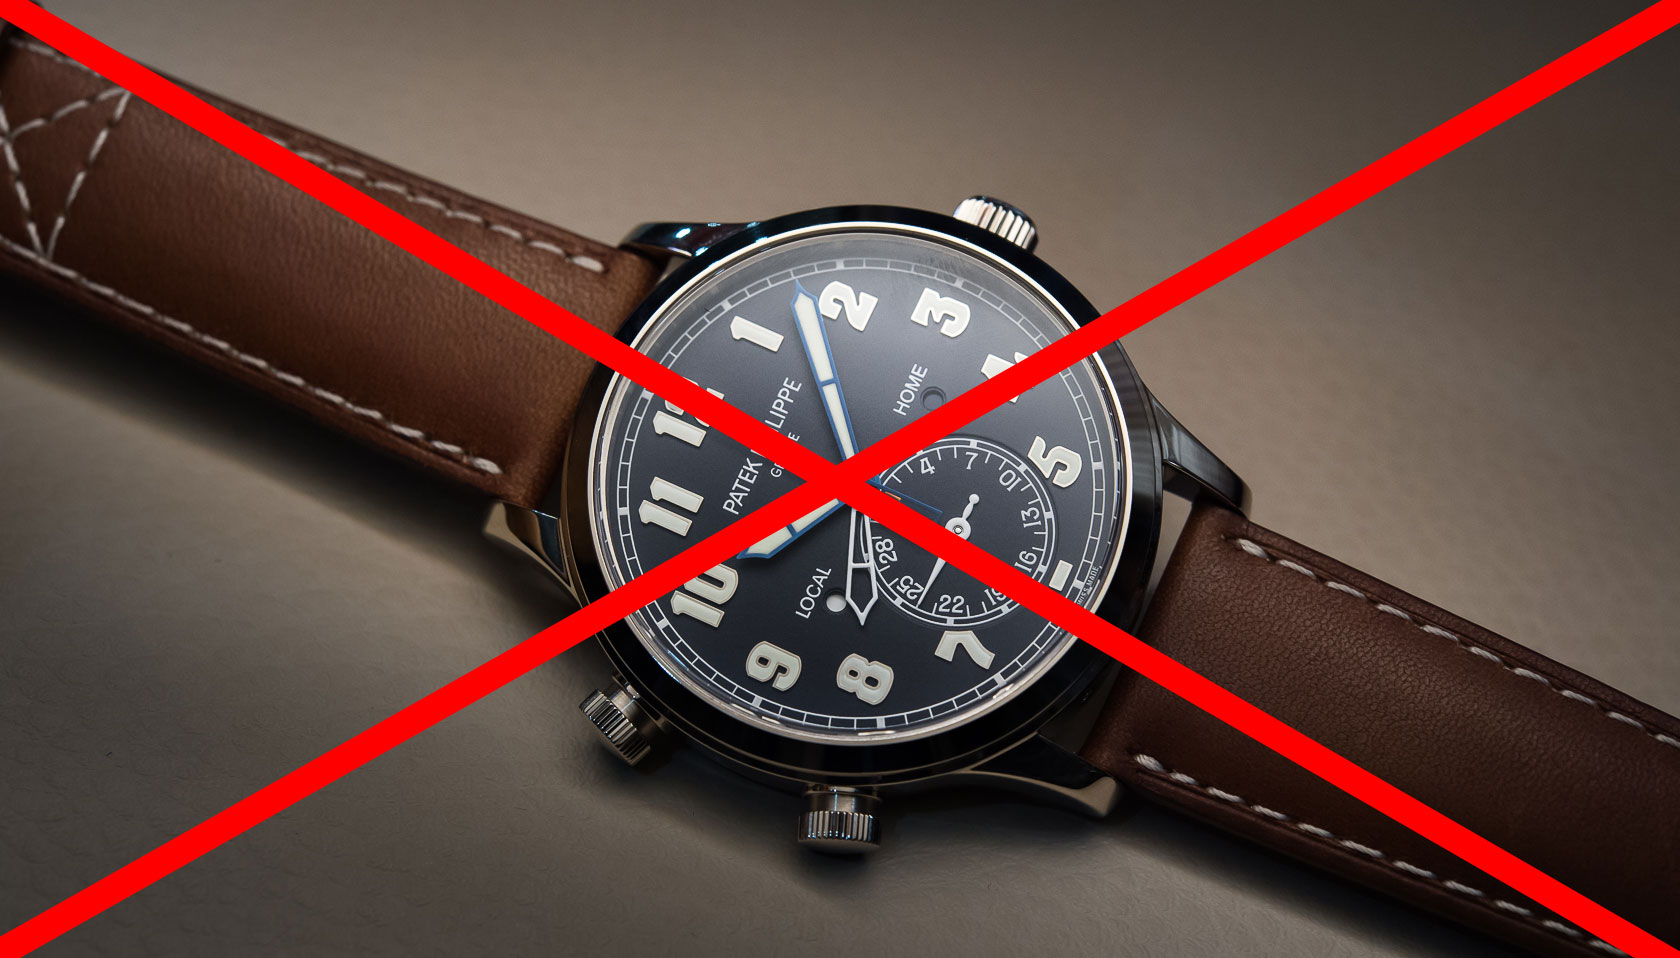 EDITOR'S PICK: PART 2 – Why I'll always be a 'vintage watch guy'